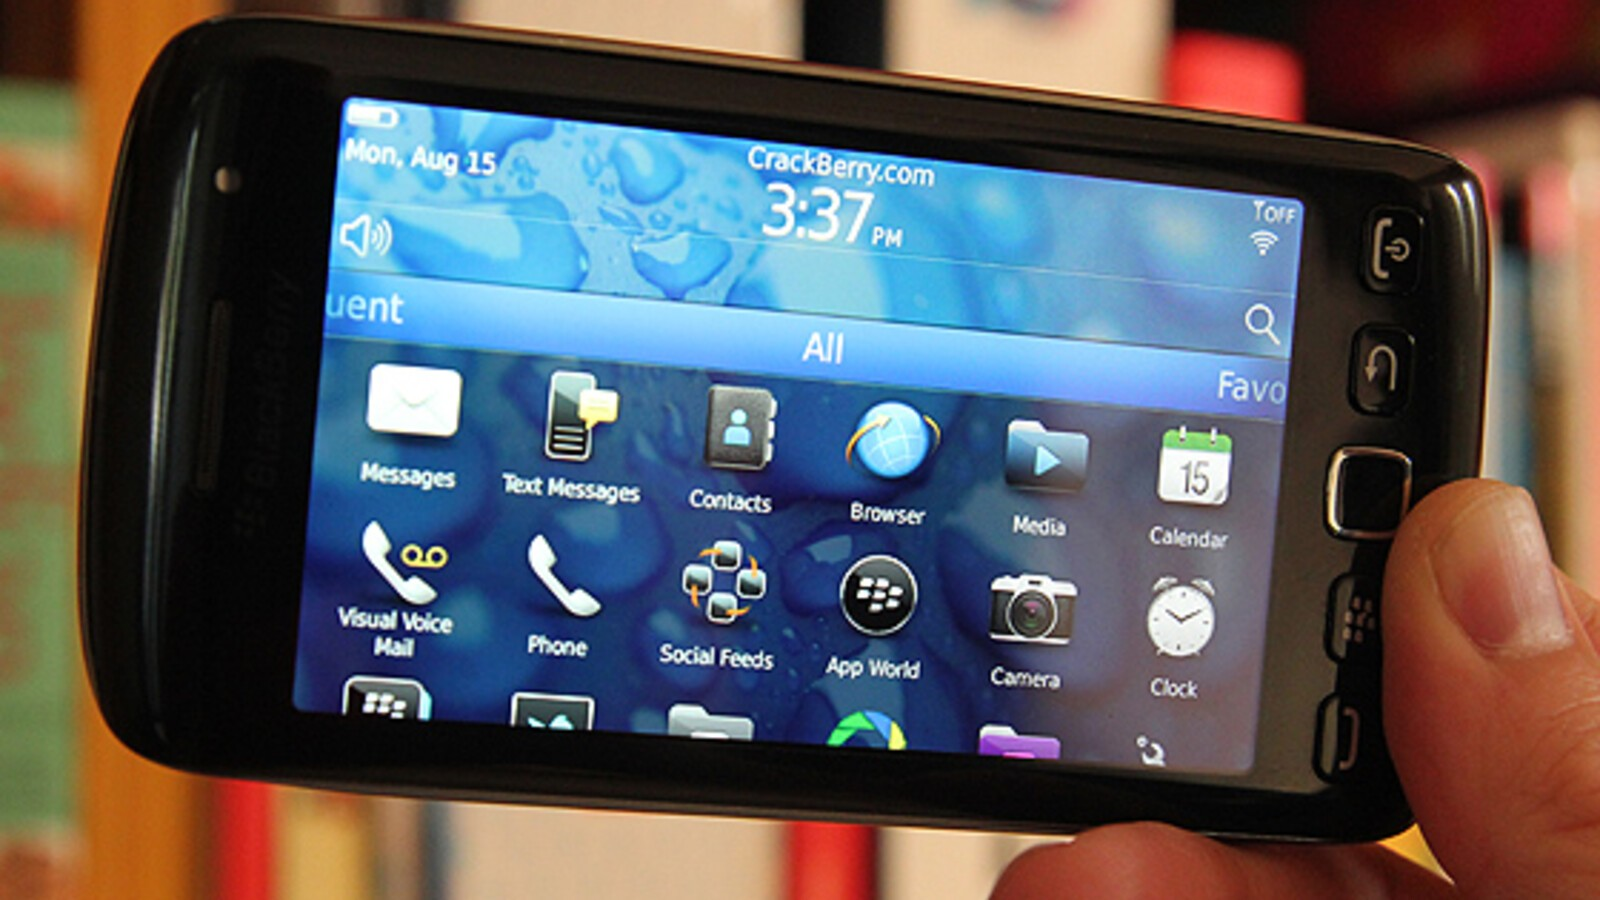 BlackBerry Torch 9860 Review